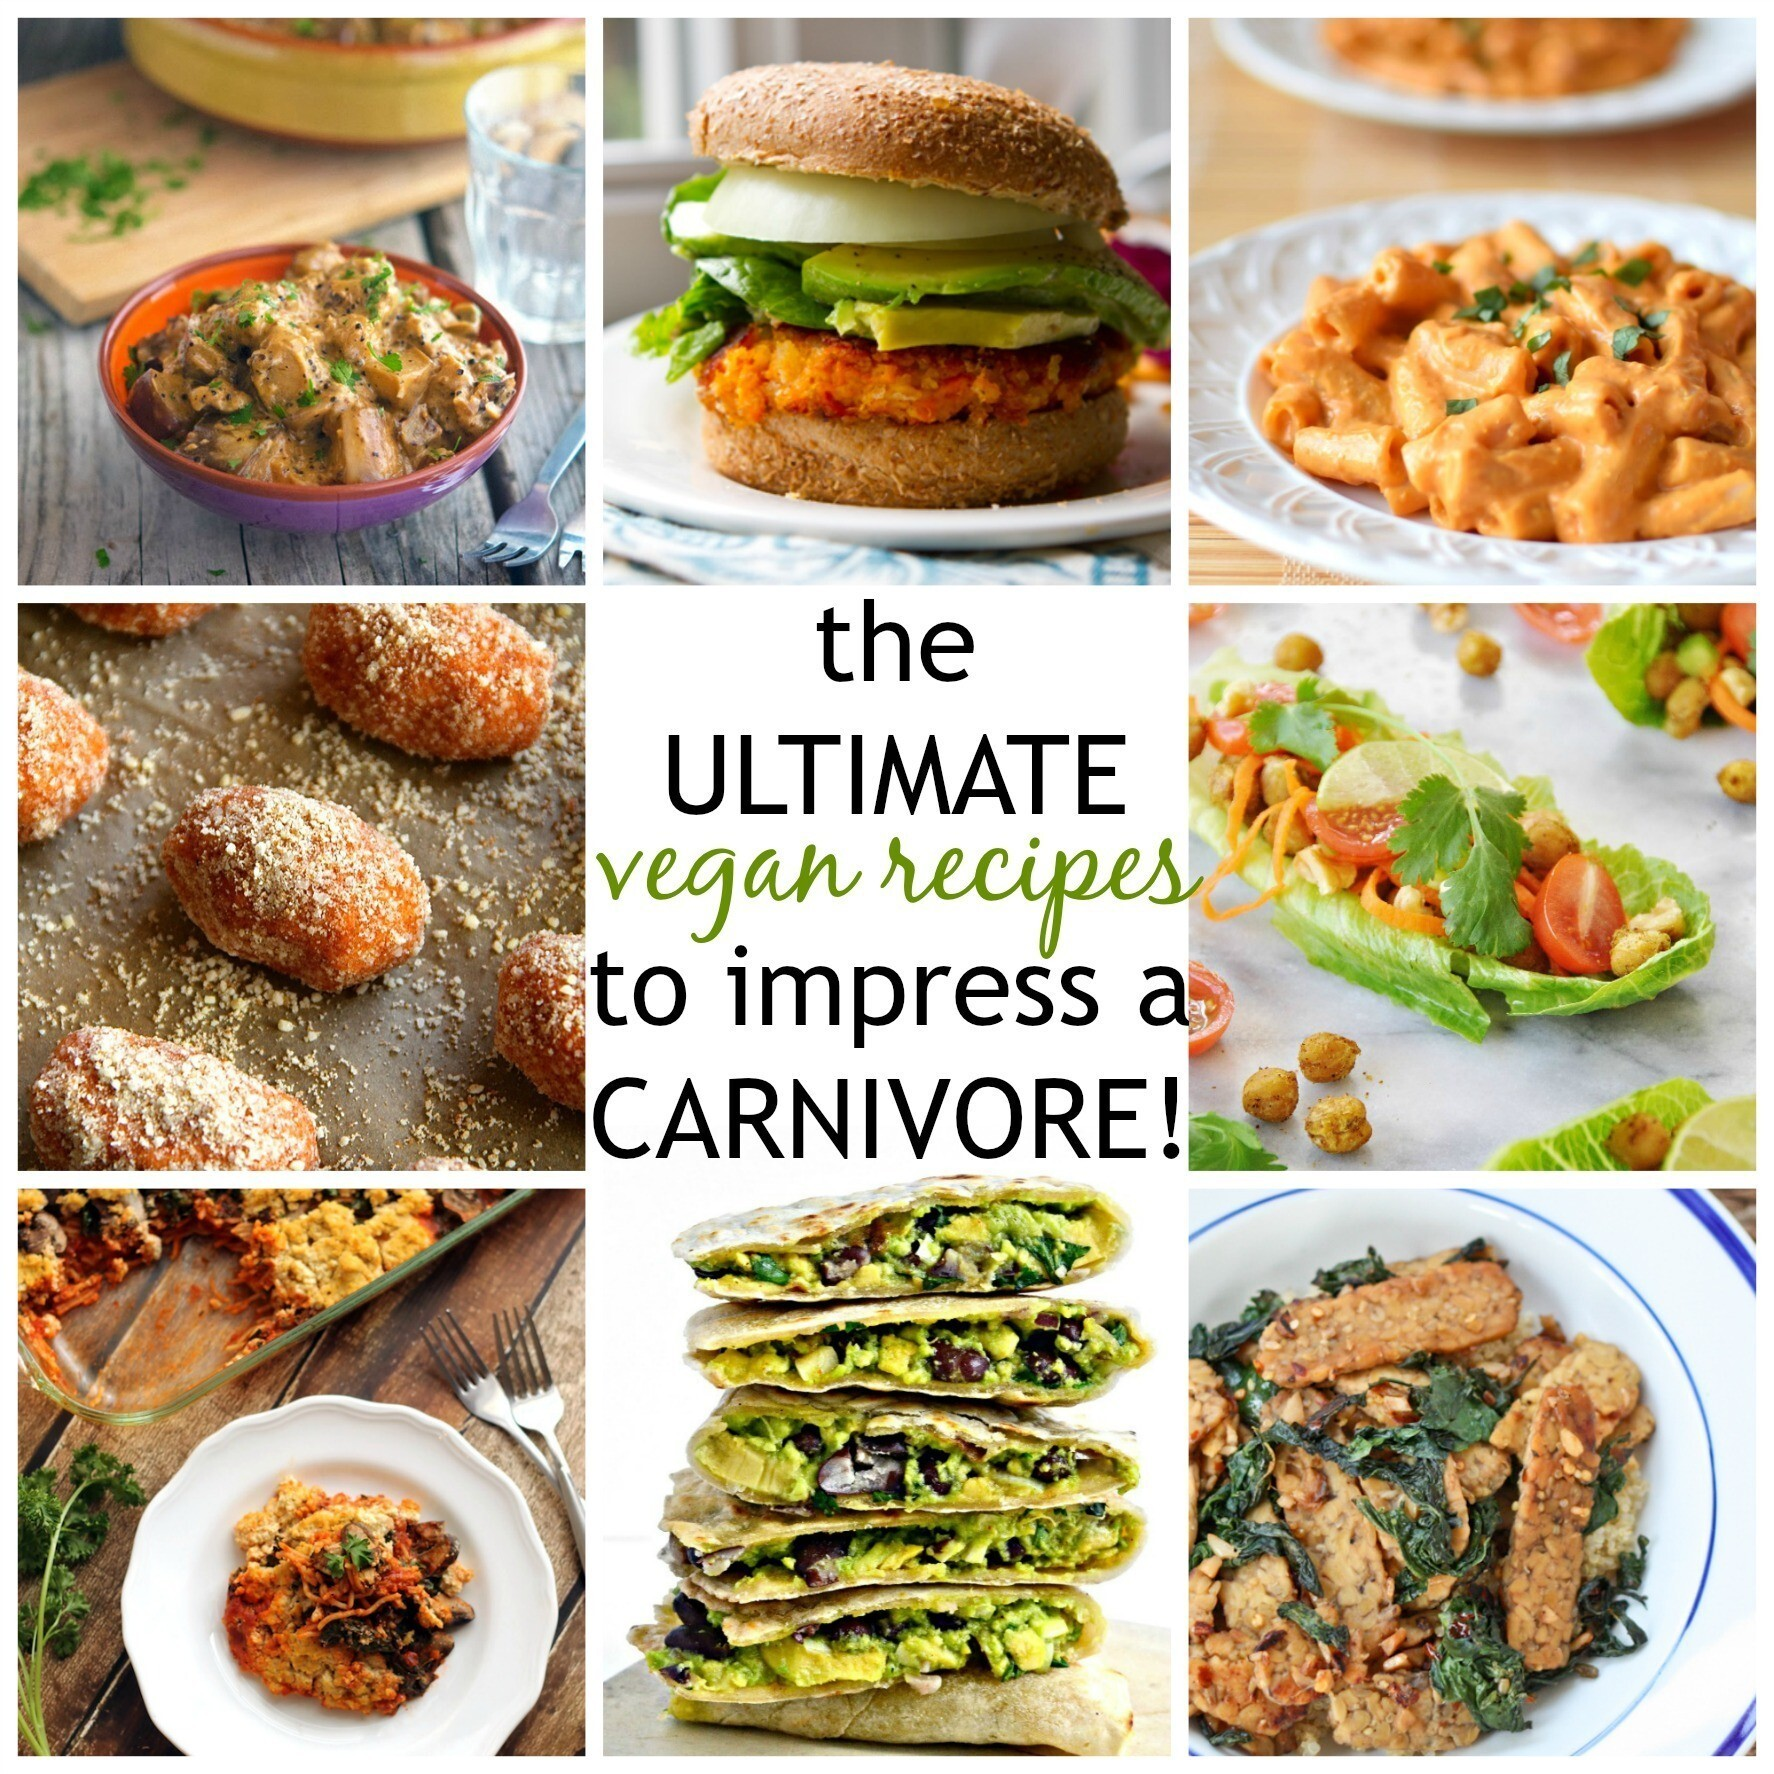 Vegan Recipes to Impress a Carnivore